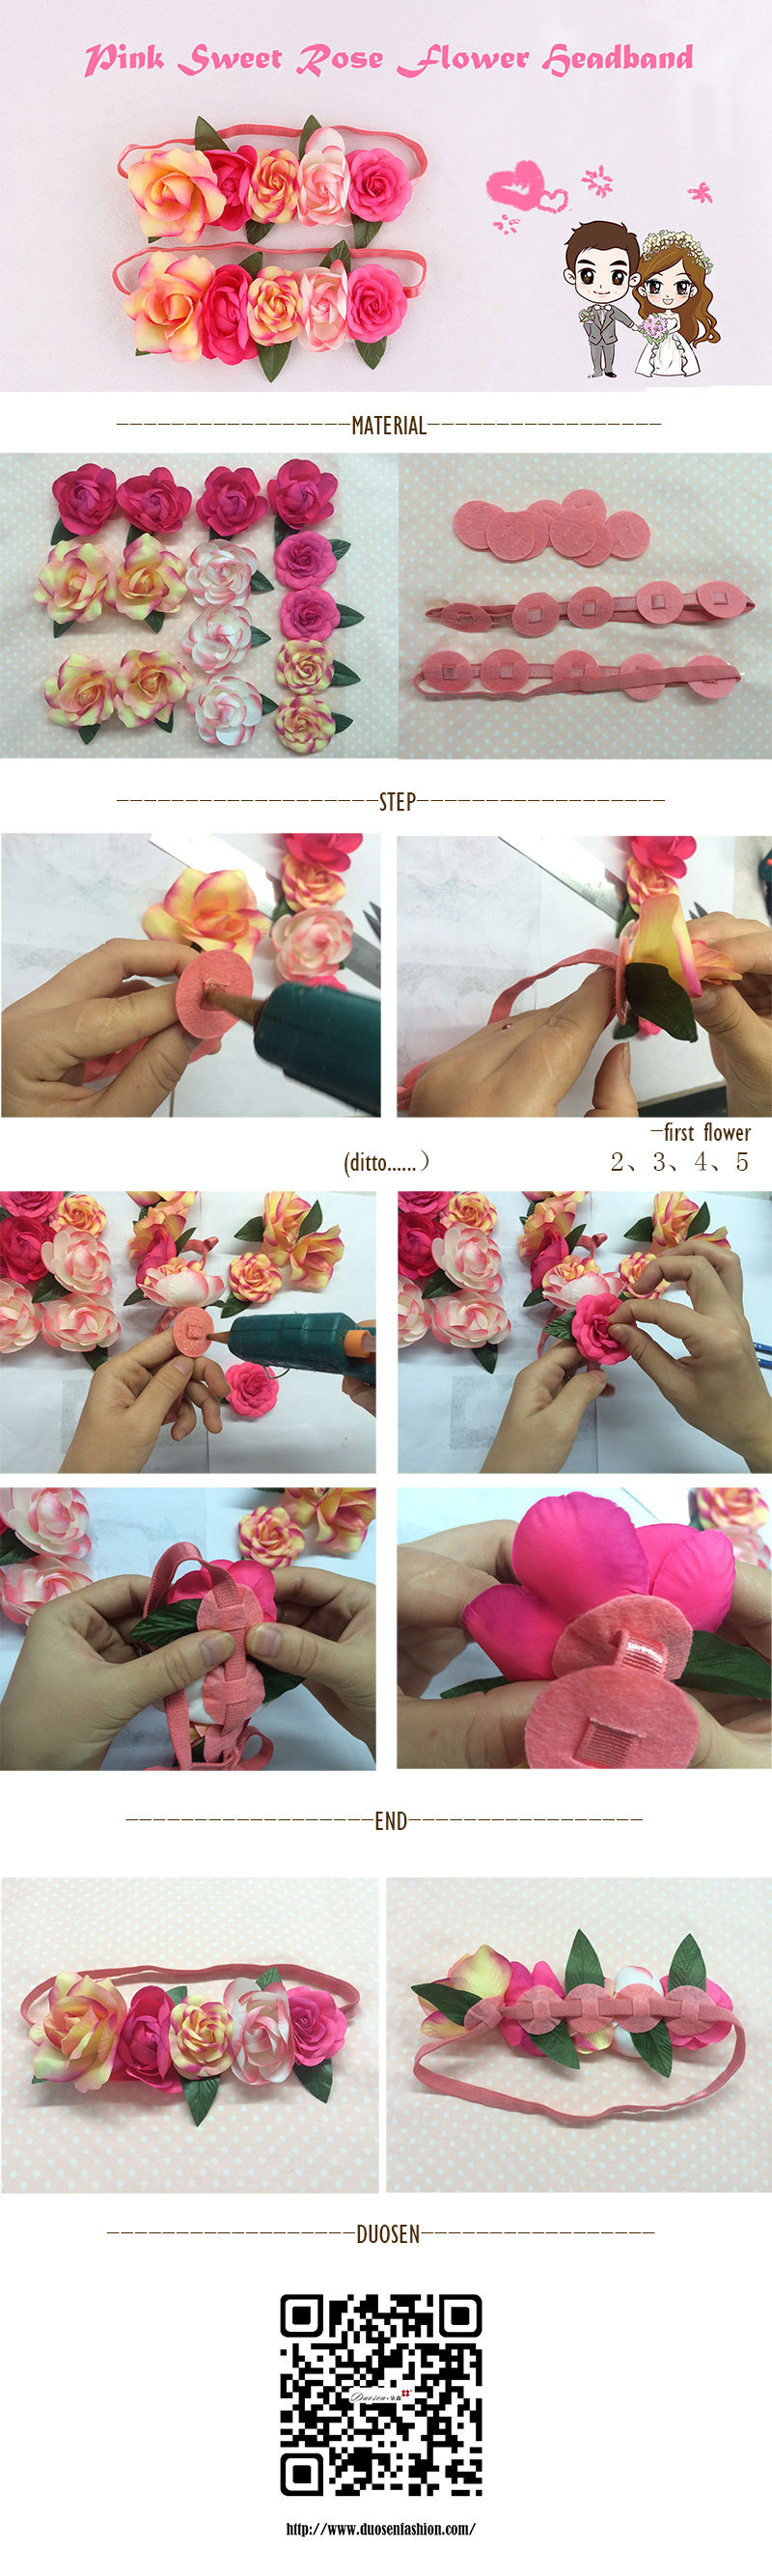 one minute tutorial about how to make sweet rose flower headband quickly